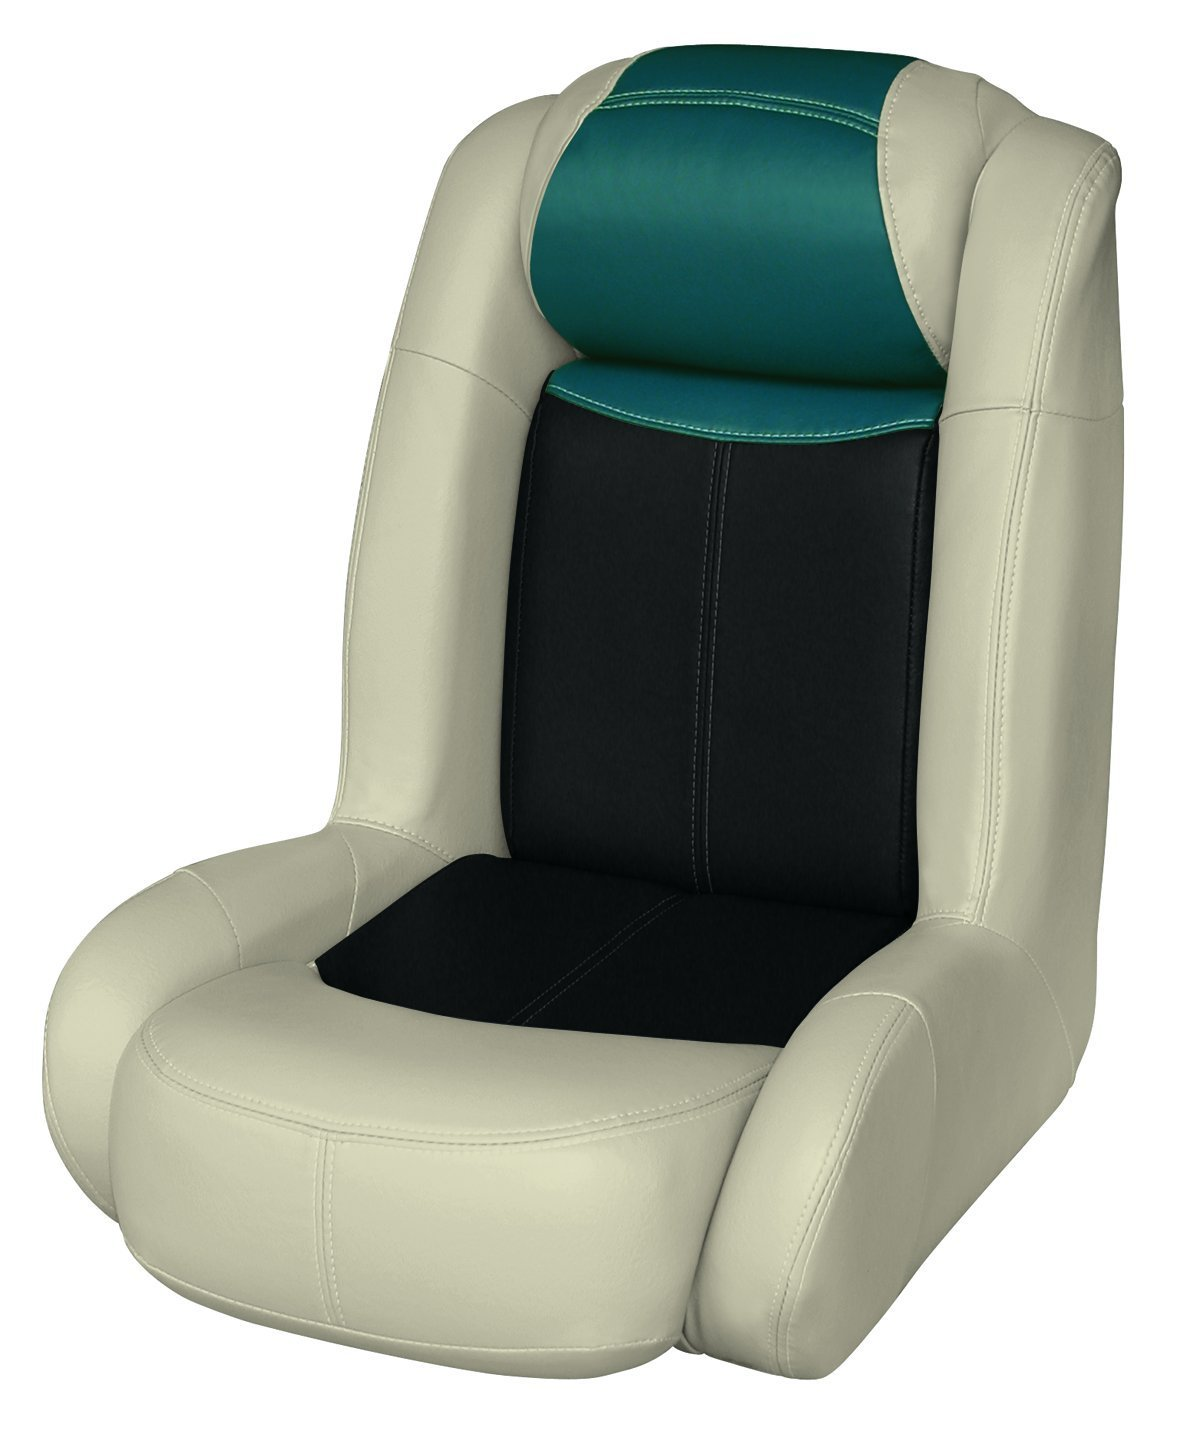 Wise 8WD1452-1724 Blast-Off Tour Series Fish-N-Ski High Back Bucket Seat, (Mushroom/Black/Green)